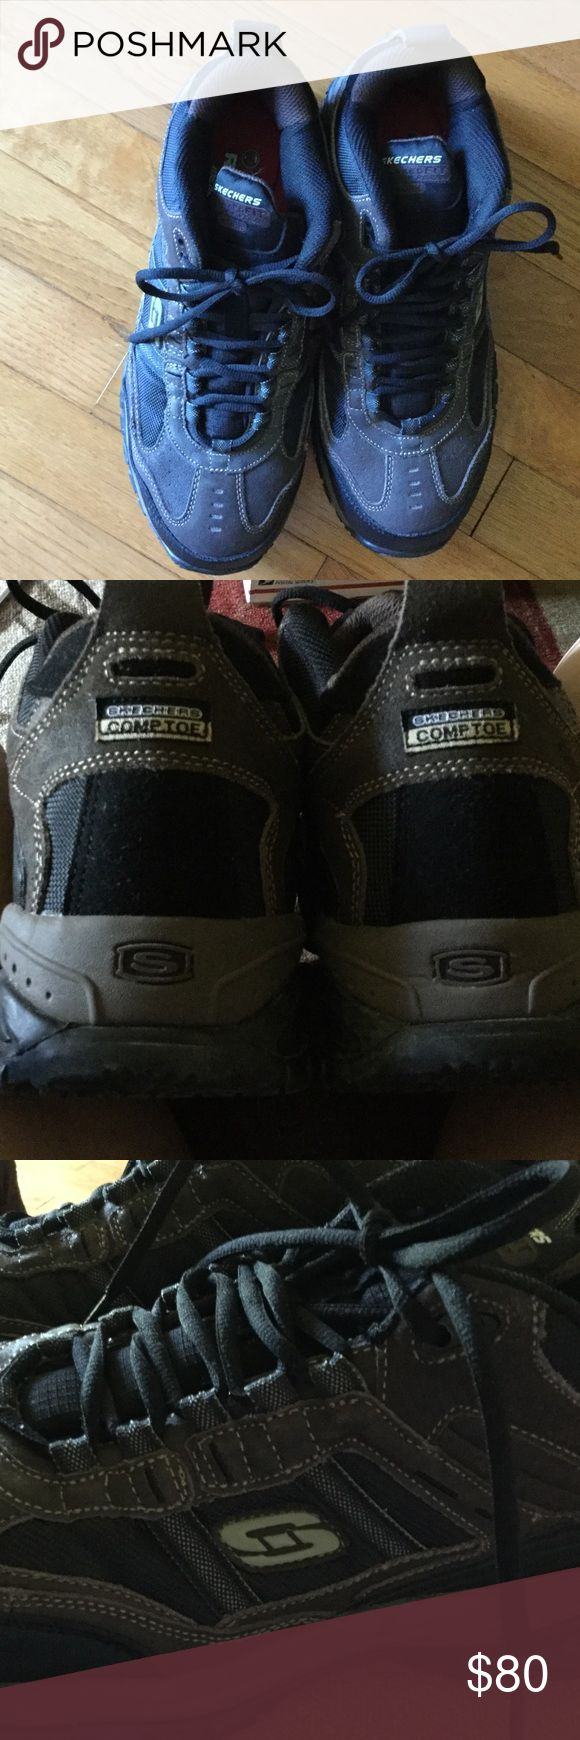 Men's Skechers work shoes Like new perfect condition Skechers Shoes Ankle Boots & Booties